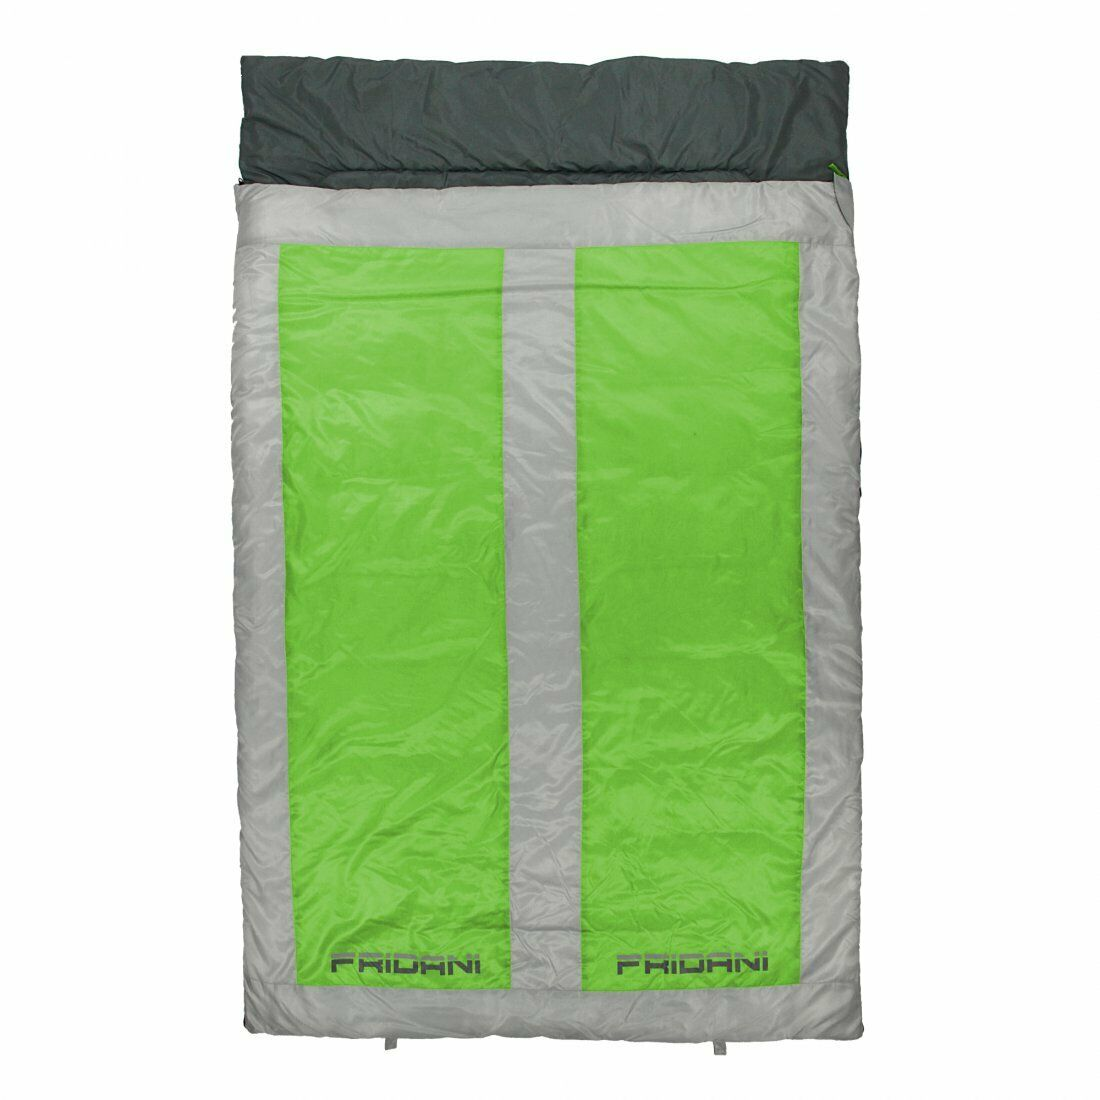 2 person Sleeping Bag QG 225x140 Double Blanket Green -22°C warm & soft